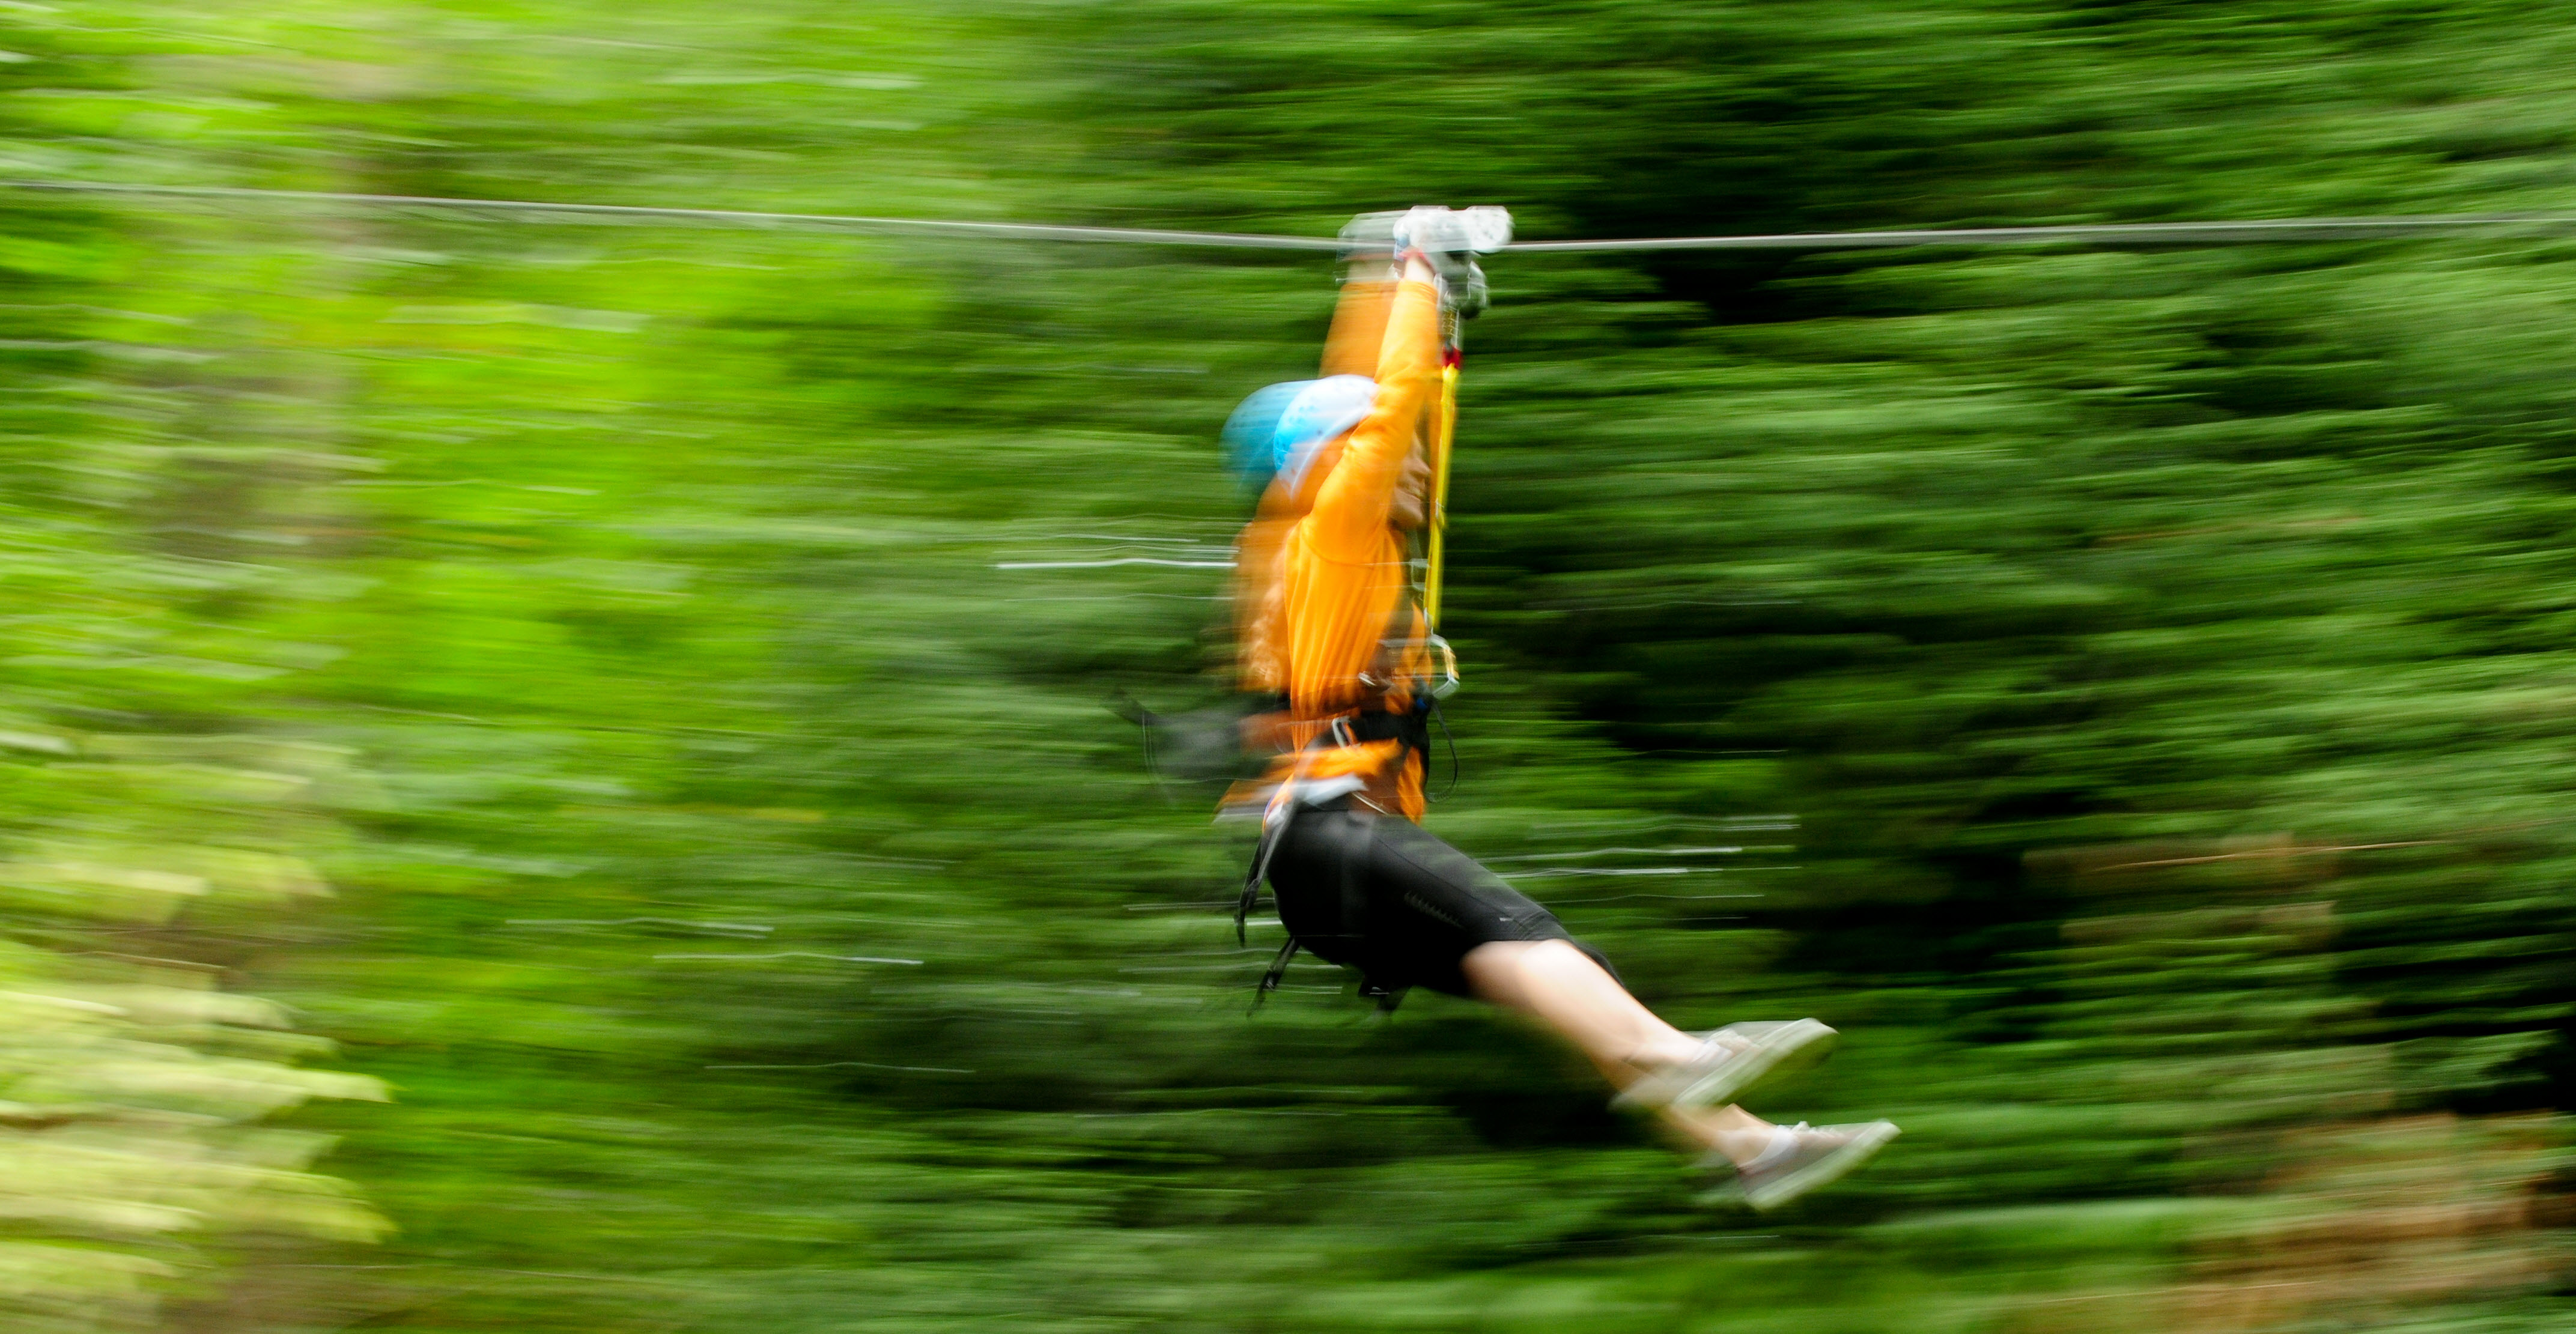 wheee bellevue u0027s zip tour and four other wild zip lines parentmap